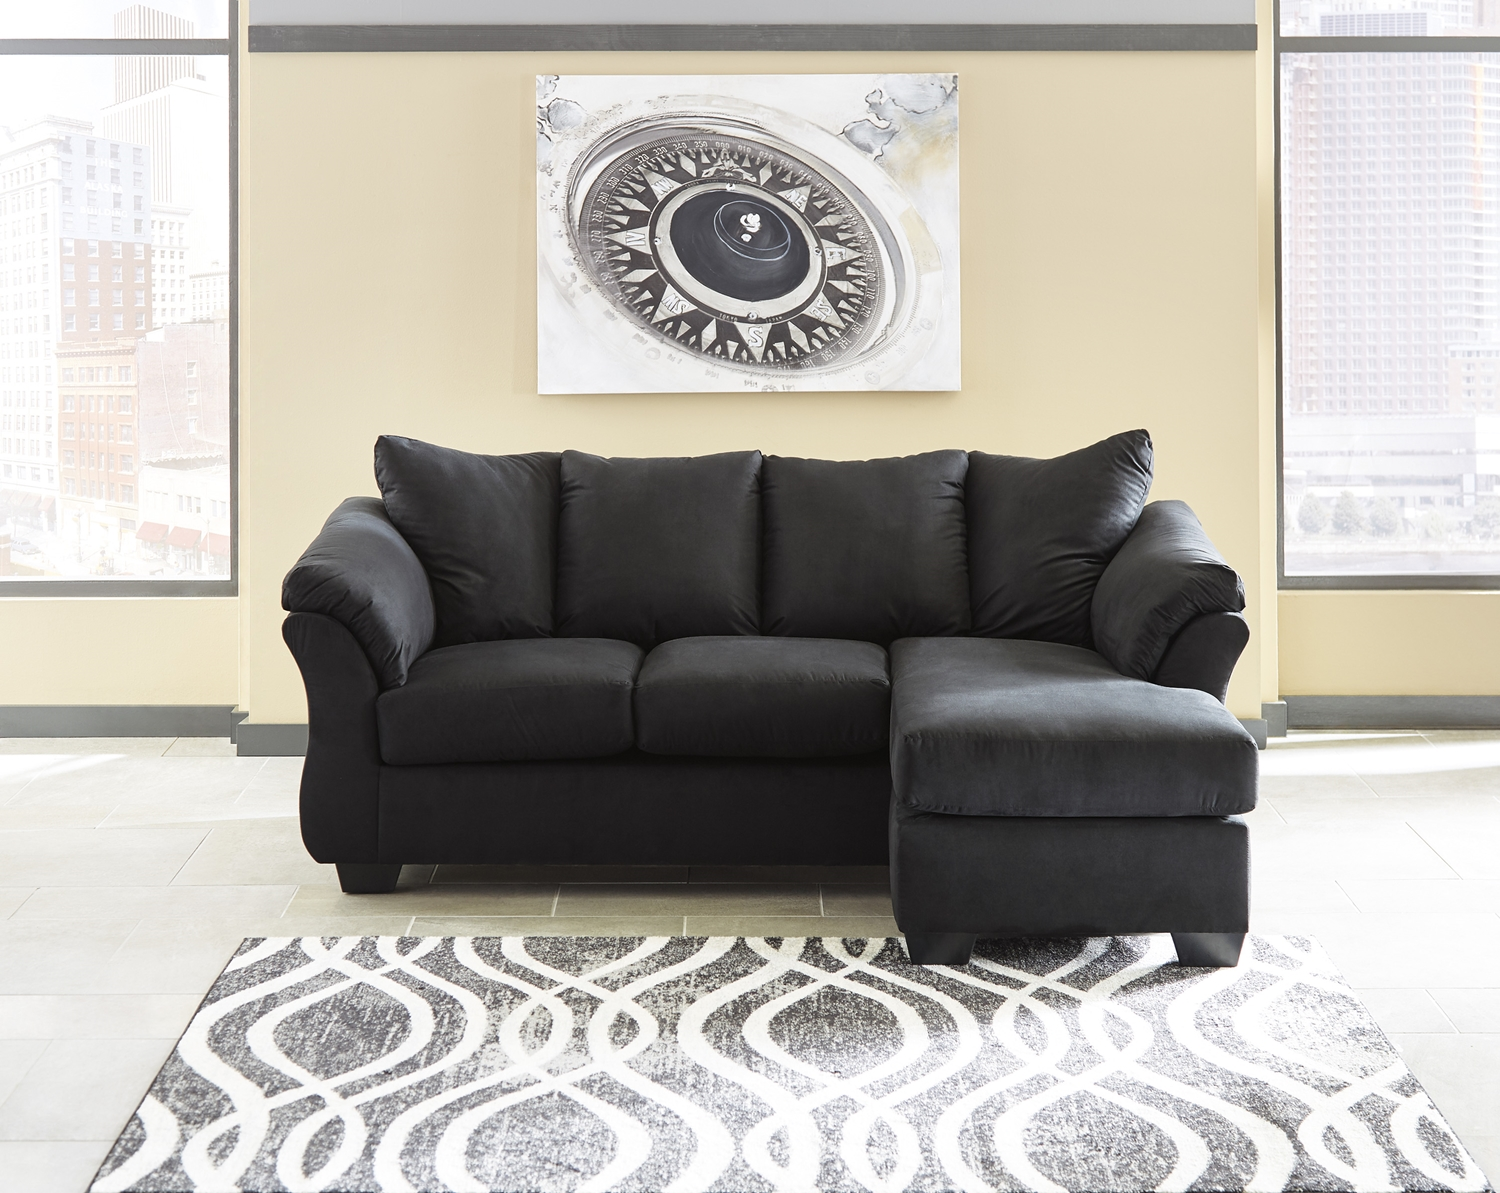 darcy sofa chaise ashley furniture design images 2017 75005 by dallas